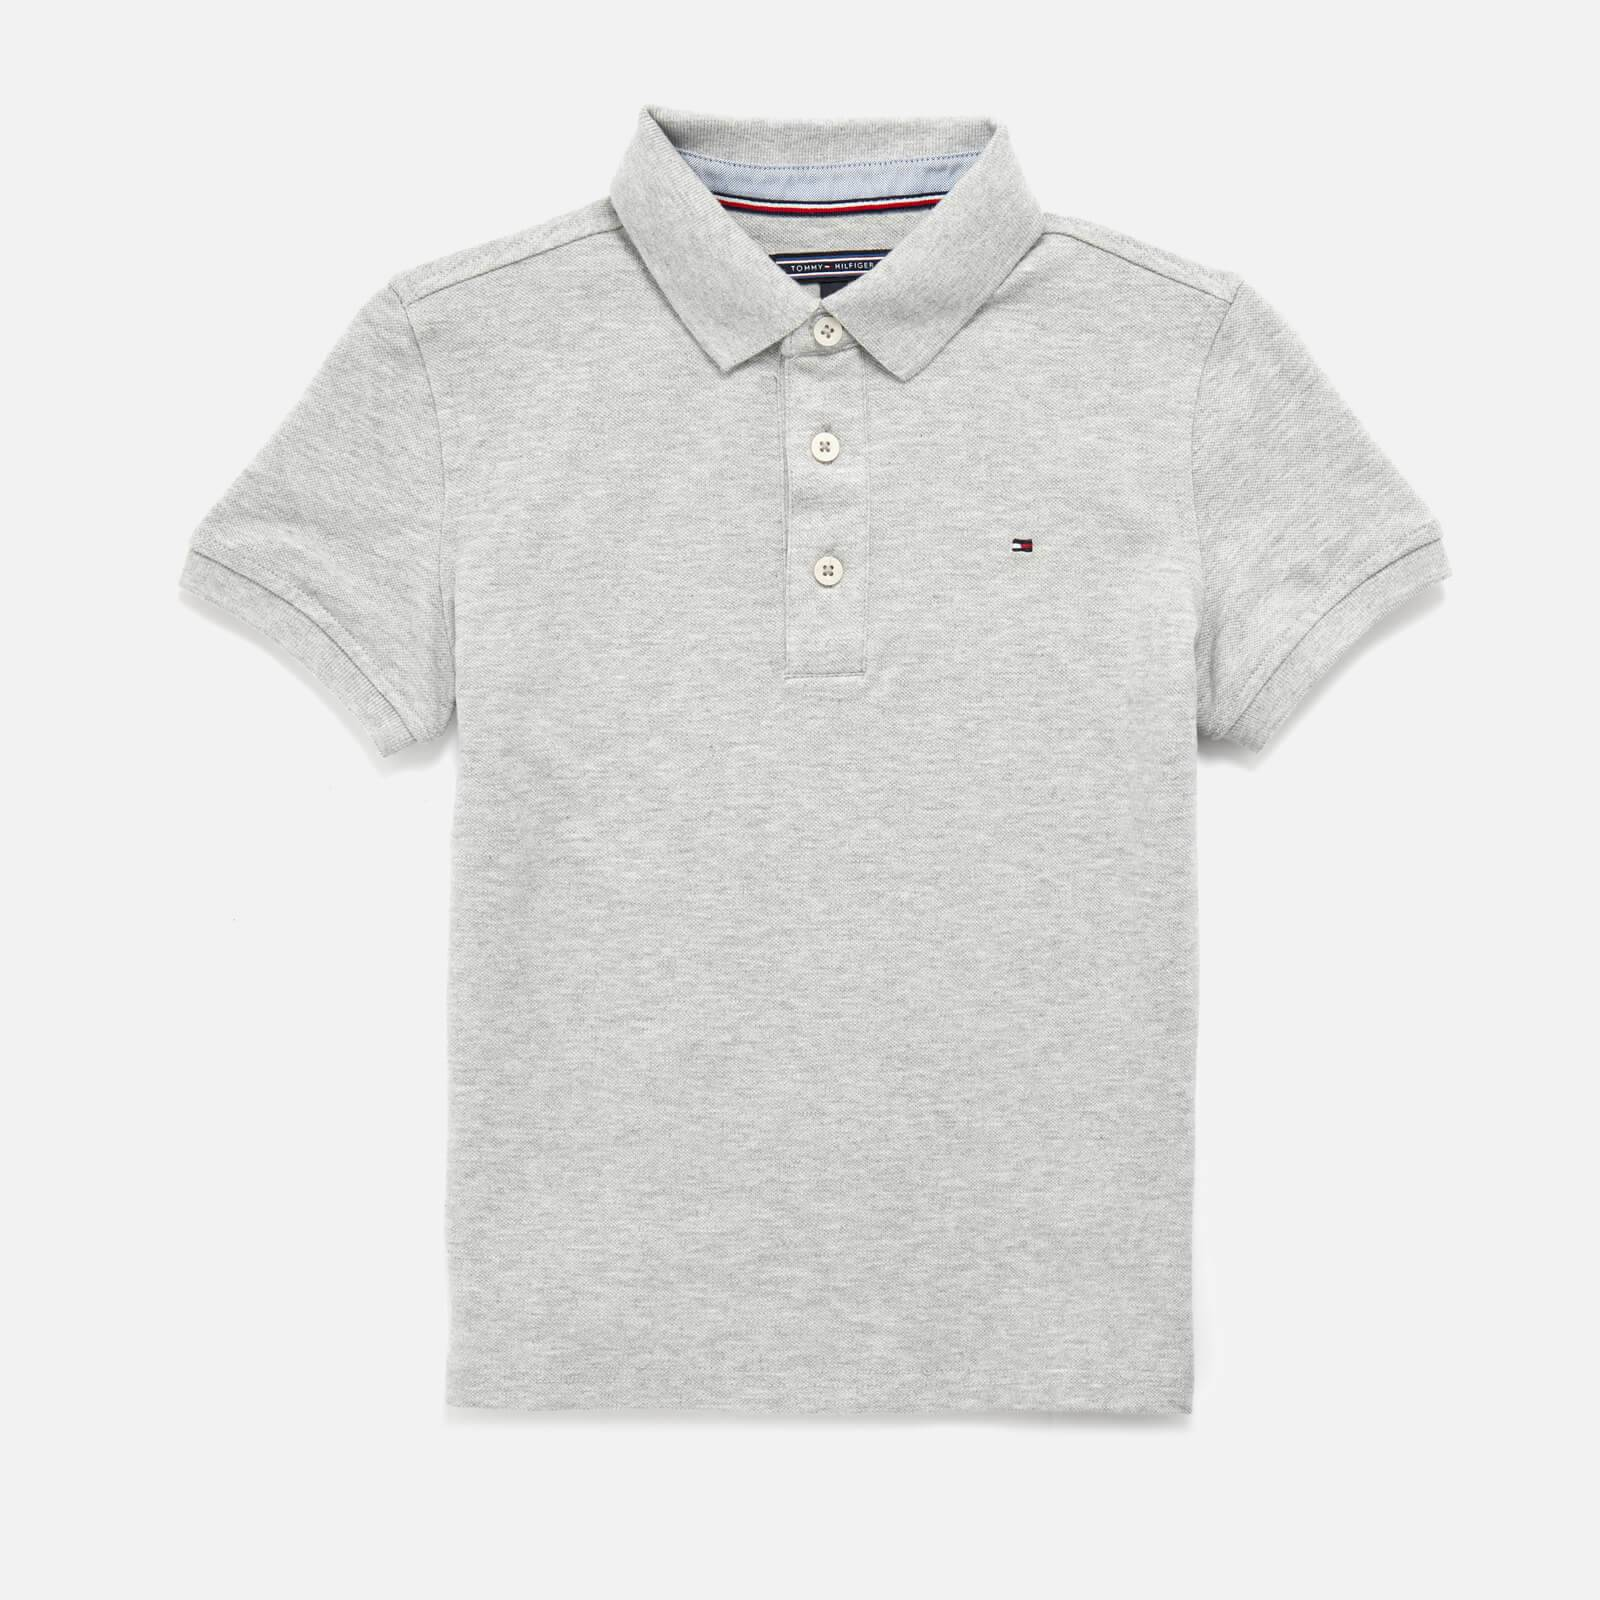 Tommy Kids Boys' Iconic Polo Shirt - Grey Heather - 6 Years